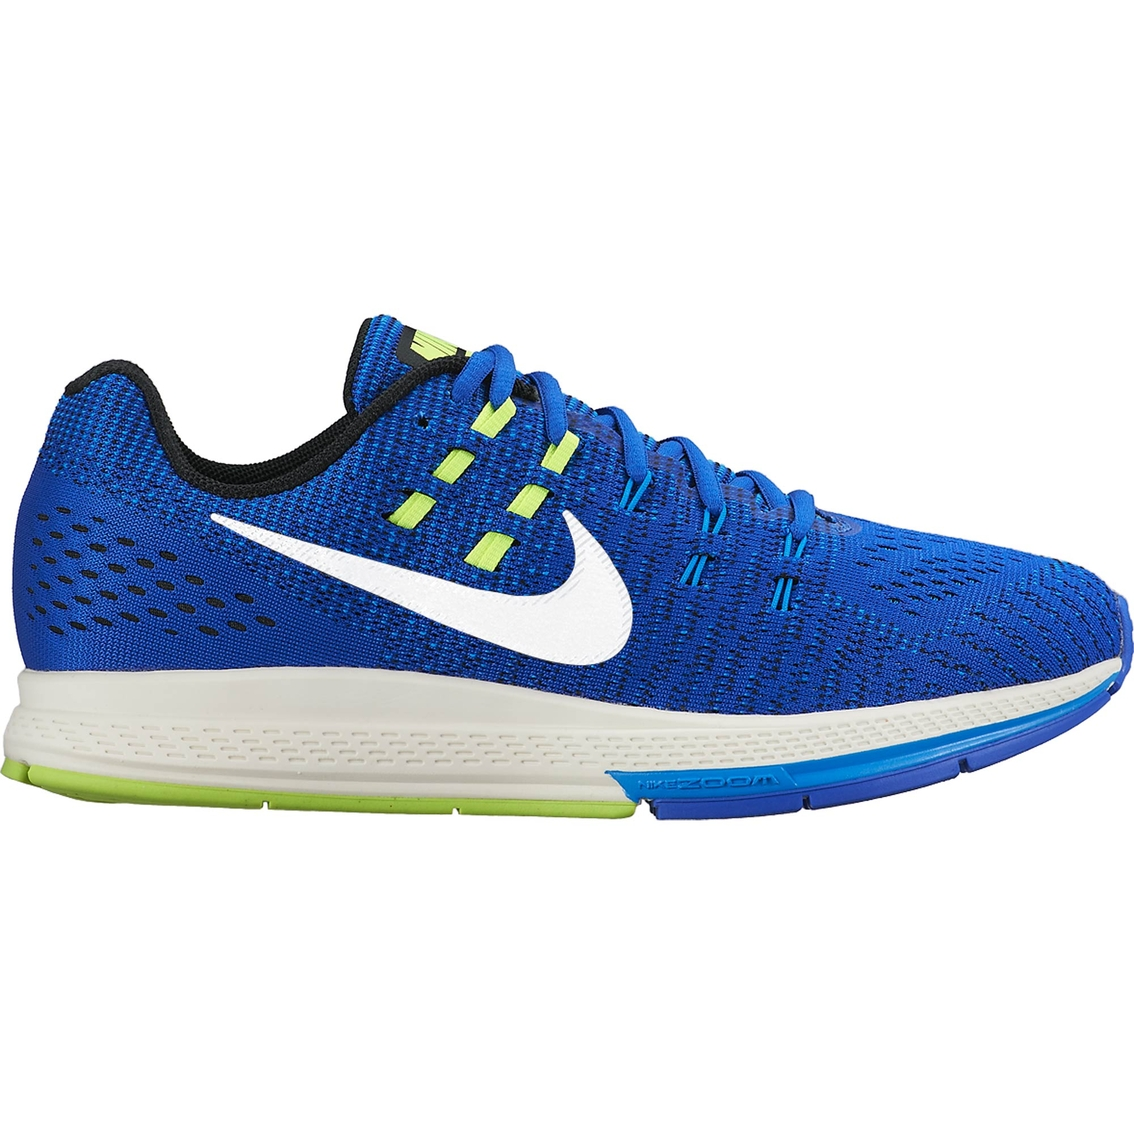 2074411889e2 Nike Men s Air Zoom Structure 19 Running Shoes